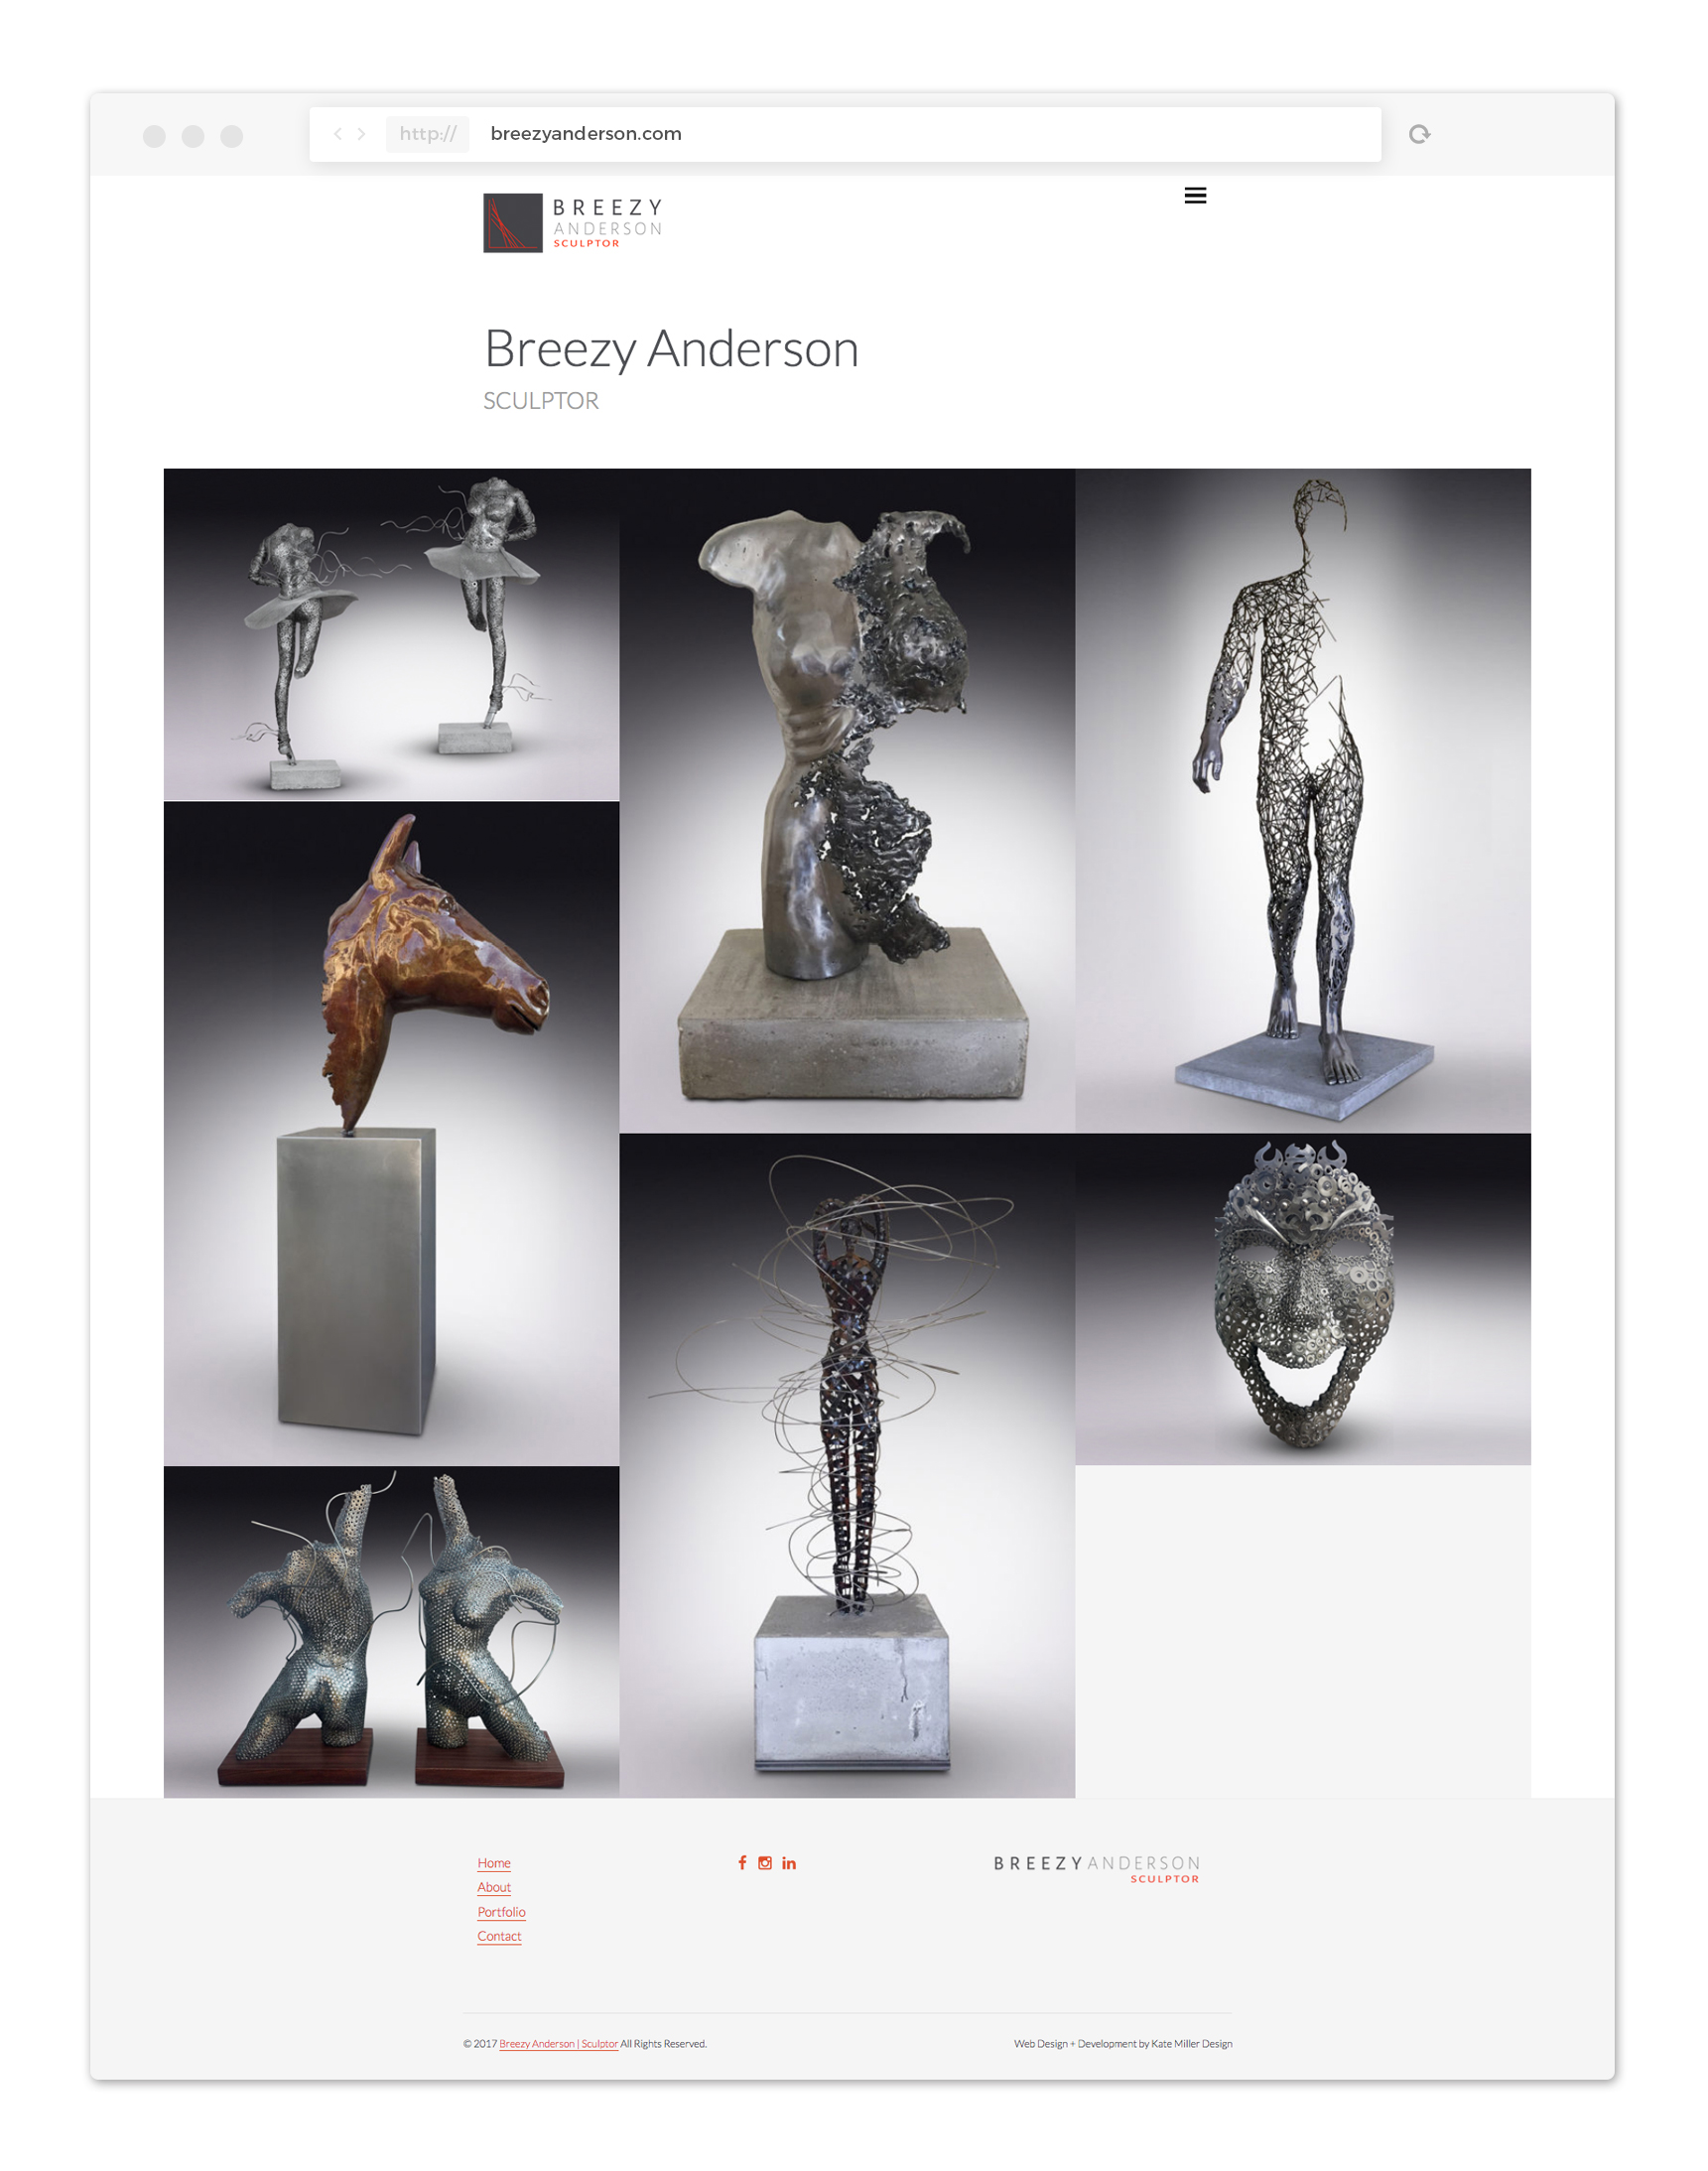 Breezy Anderson - Sculptor website Home